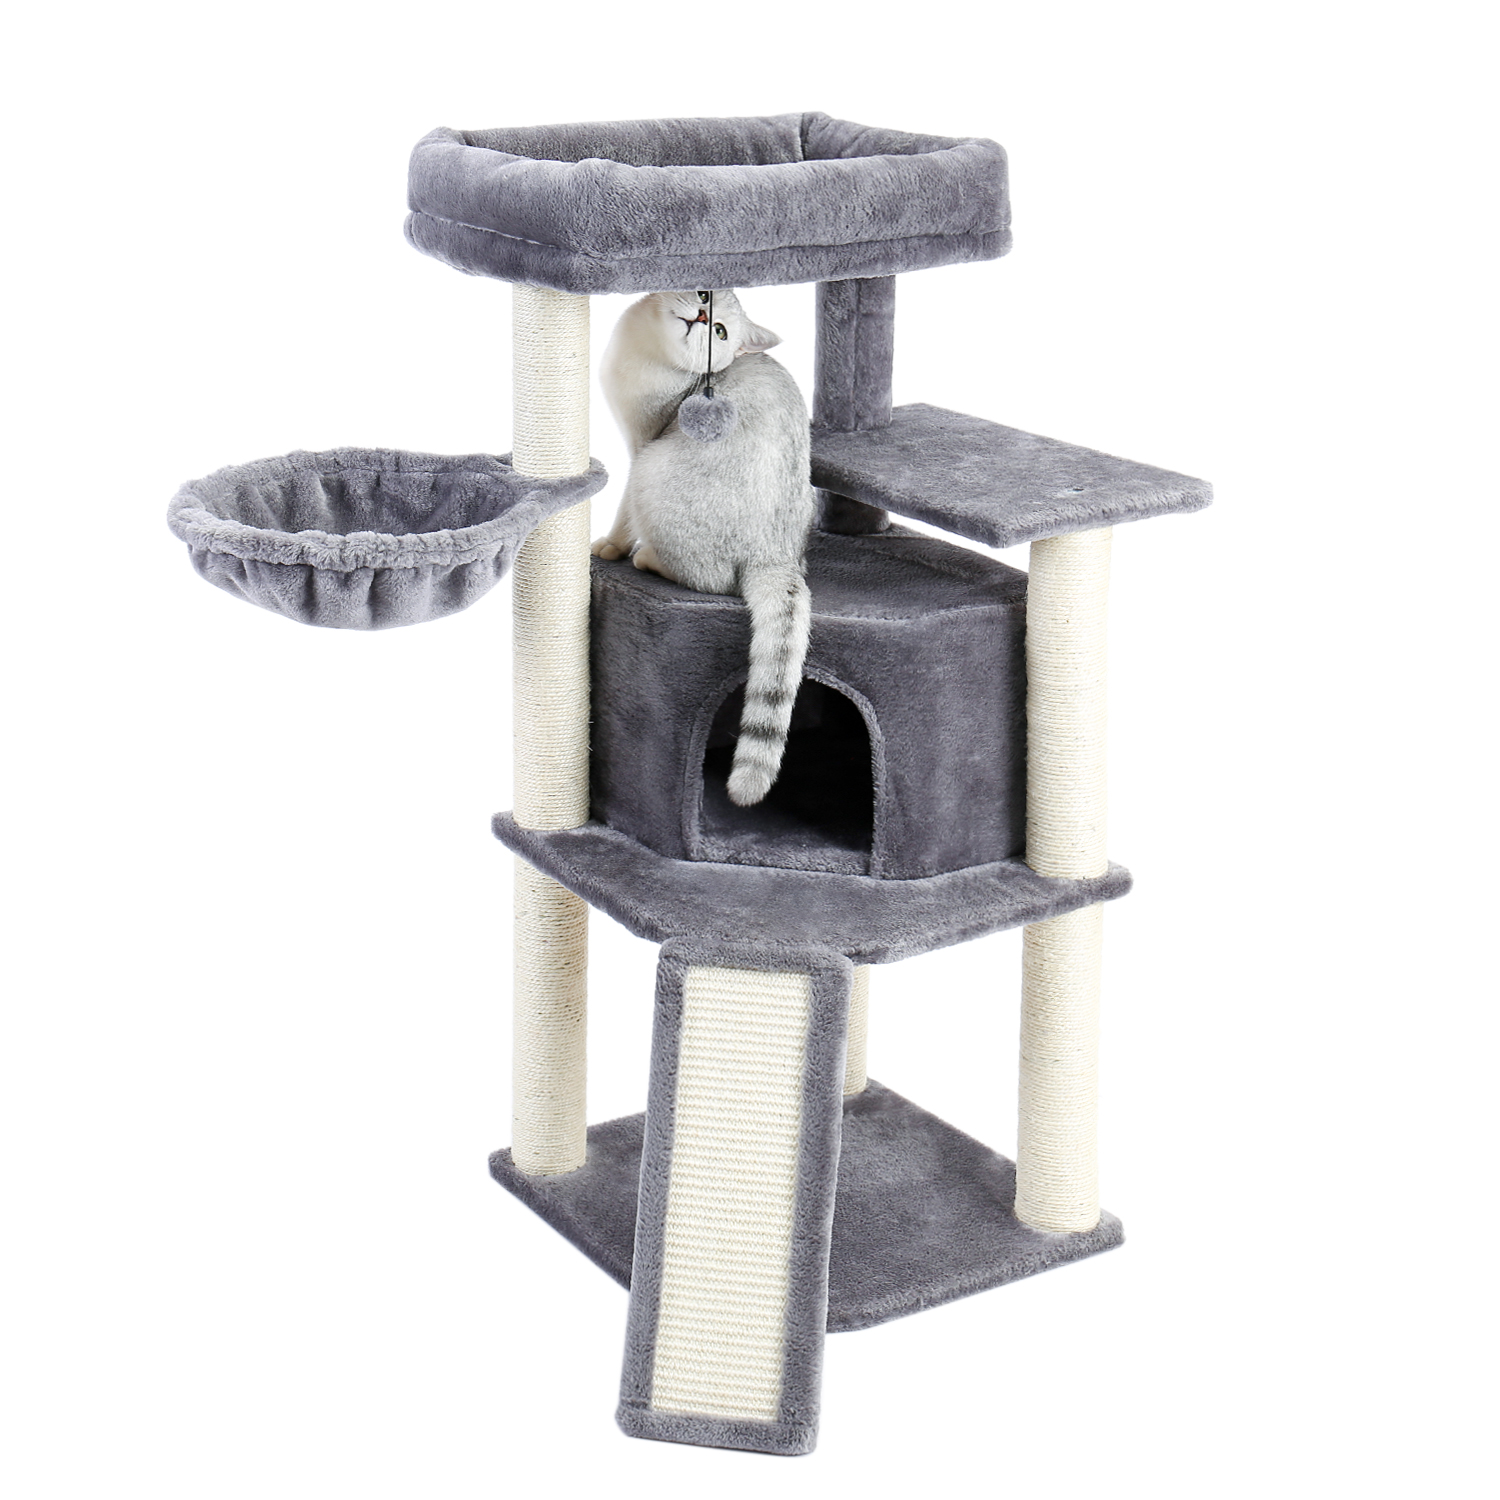 Domestic Delivery 145cm Wood <font><b>Cat</b></font> Climbing Jumping Balls Toy Frame <font><b>Cat</b></font> Furniture Scratching <font><b>Tree</b></font> <font><b>For</b></font> Kitten and <font><b>Large</b></font> <font><b>Cat</b></font> image